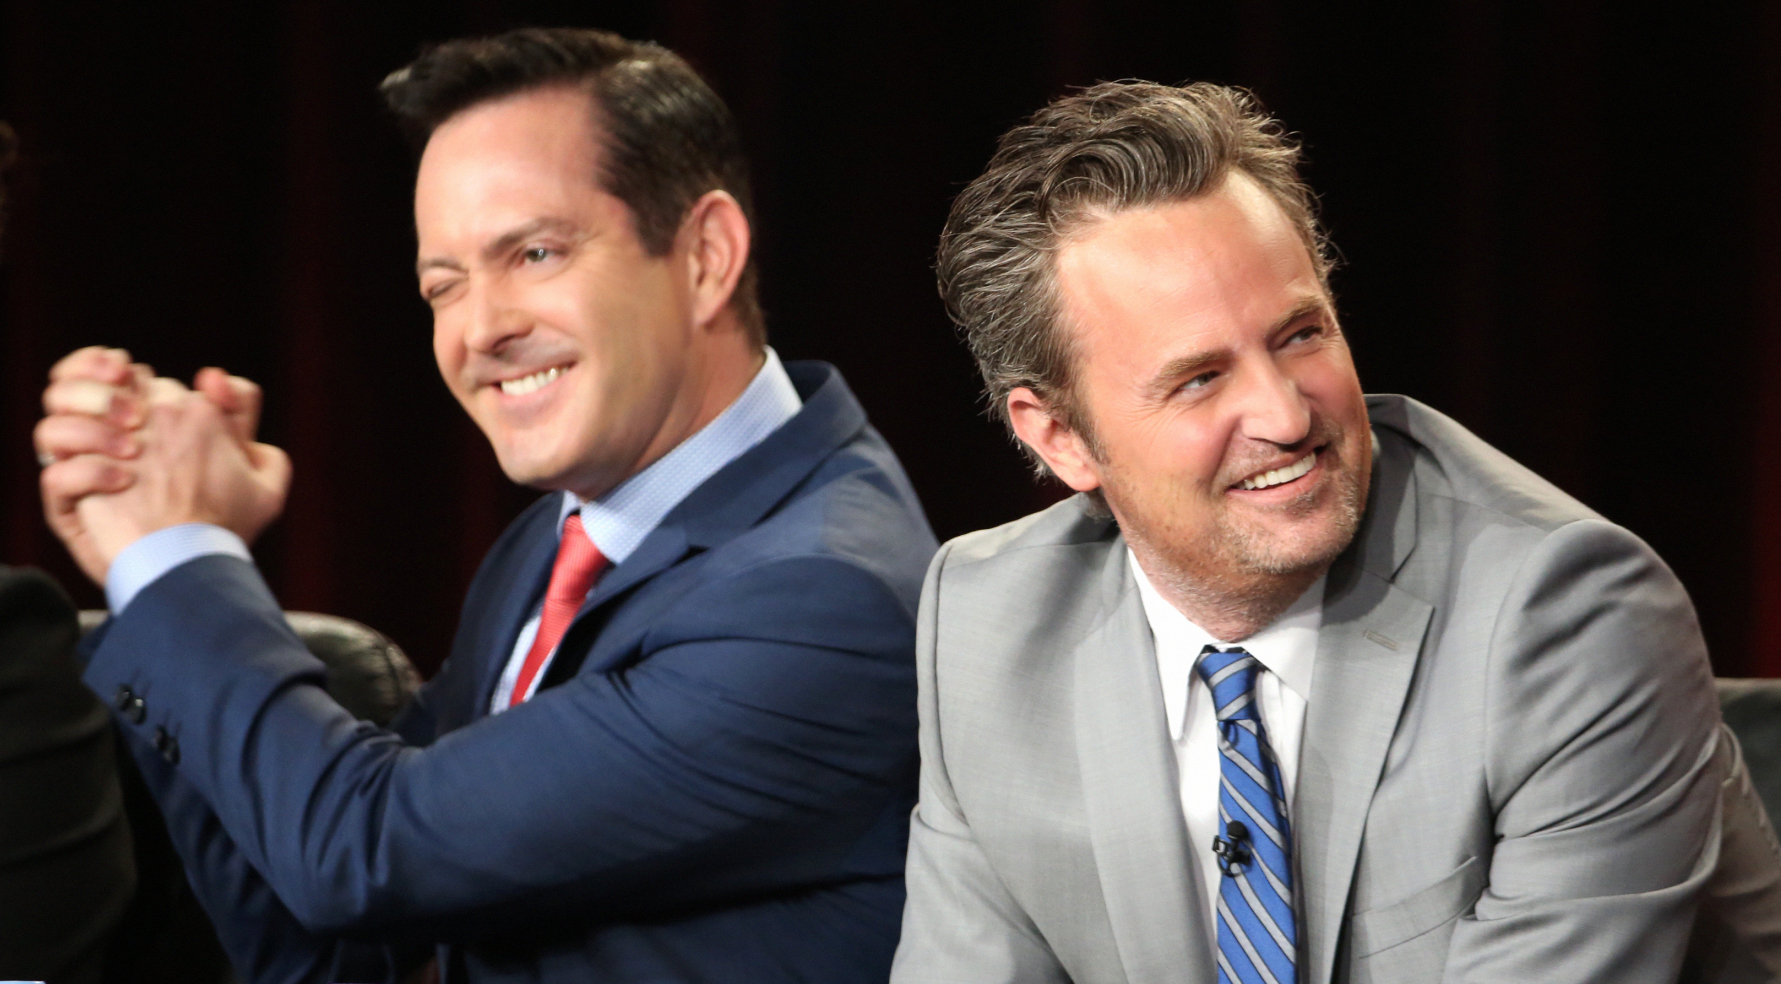 Your burning questions answered by Thomas Lennon and Matthew Perry